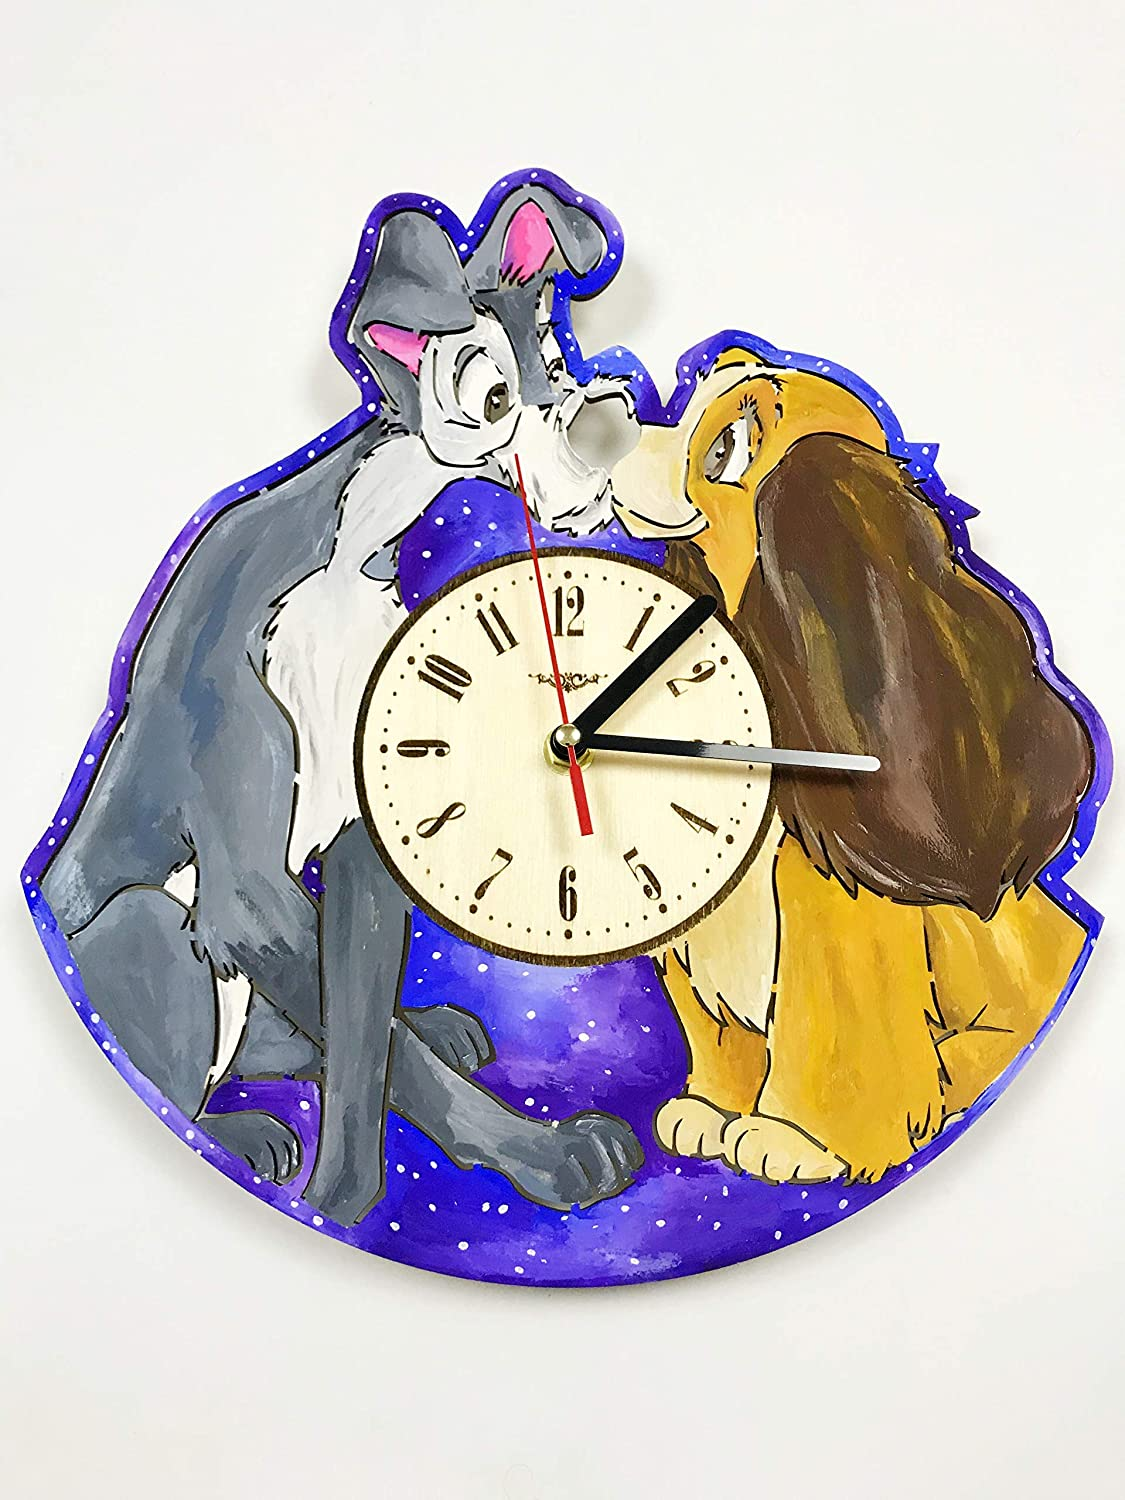 Painted Lady and The Tramp Wall Clock Wood Home Decor - Great Wall Art for Living Room Bedroom Kitchen for Men Women Kids Girlfriend Boyfriend - Silent Quarzt Mechanism